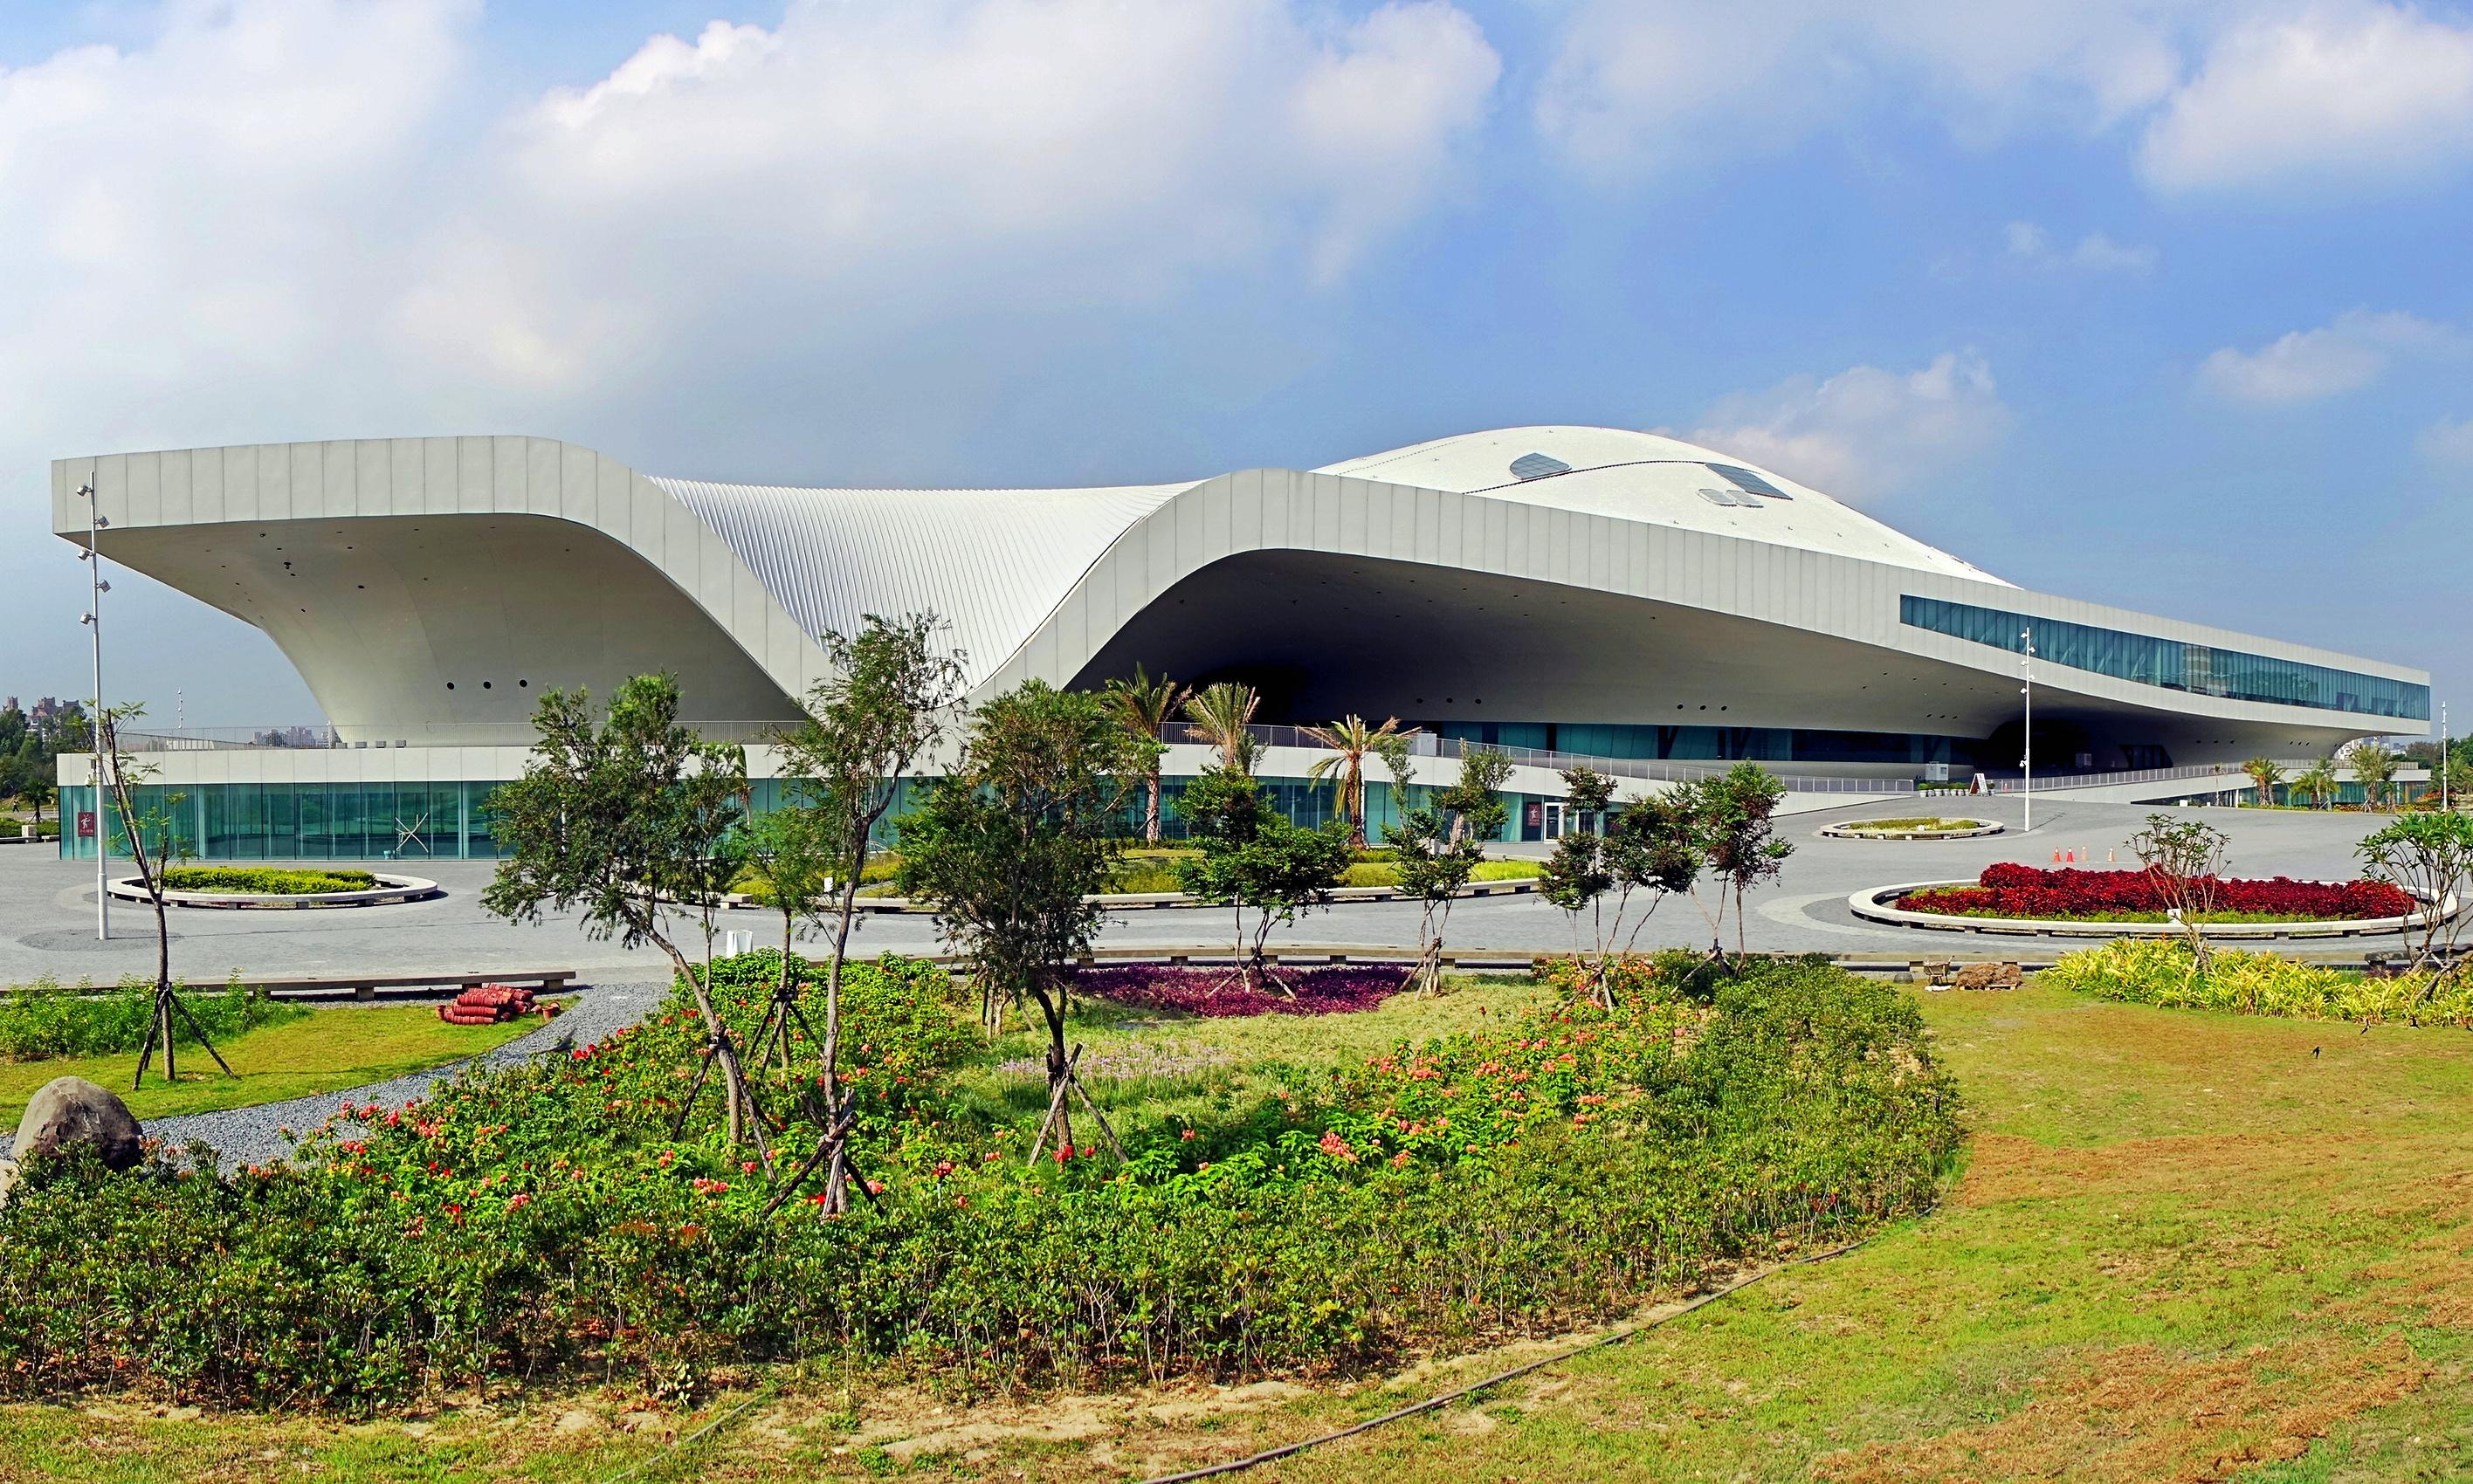 Epic scenes: the biggest arts venue on Earth lands in Taiwan